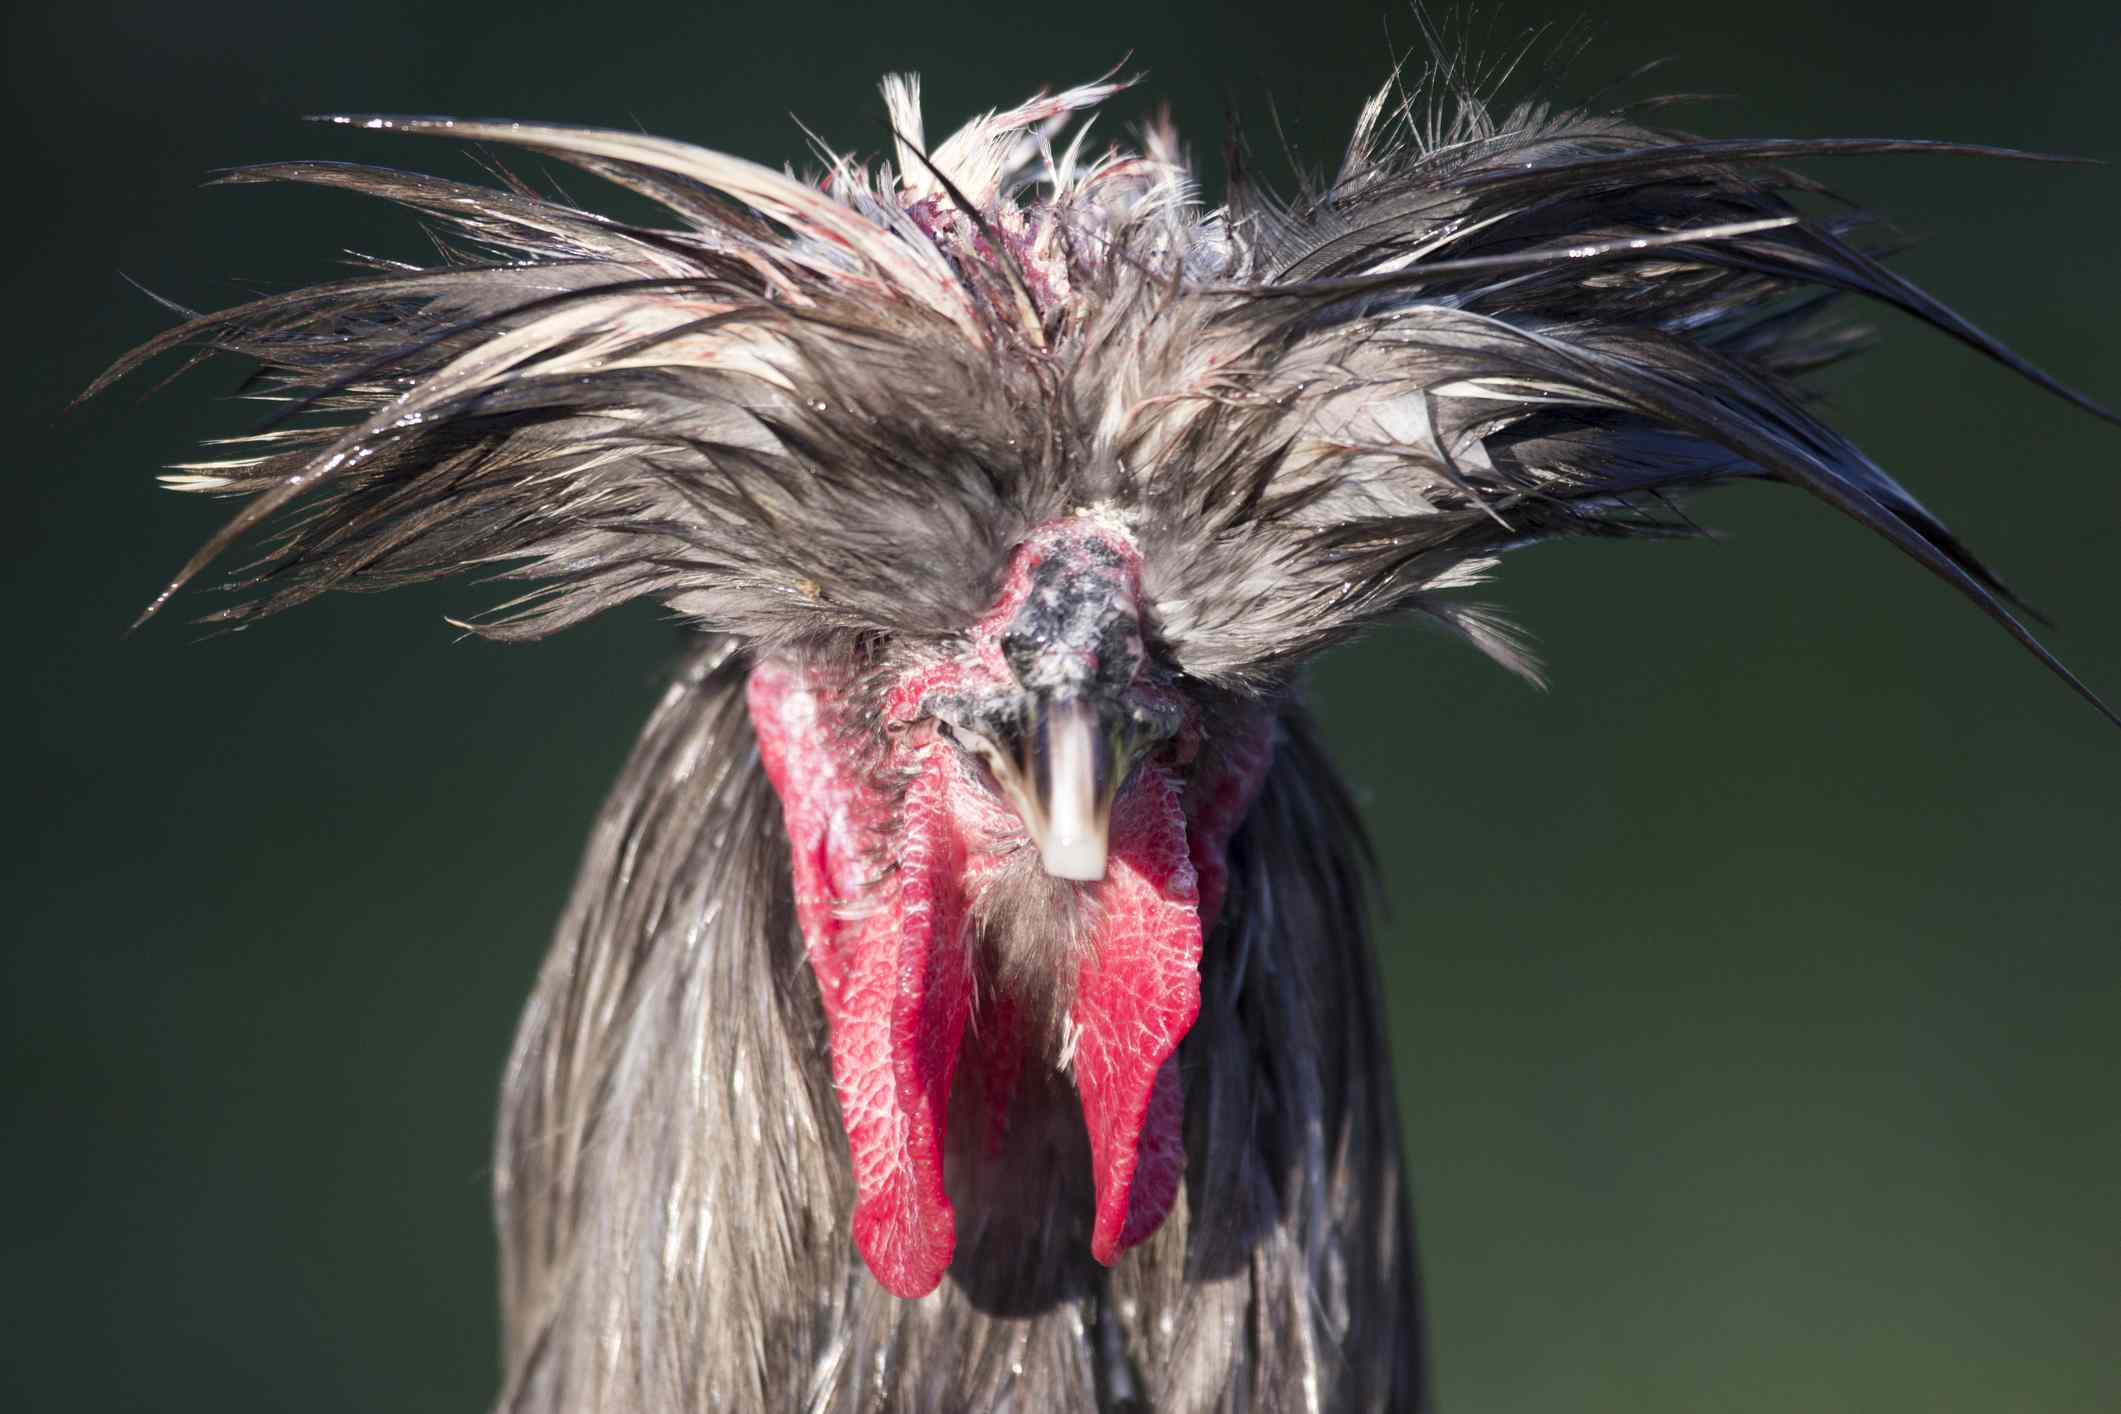 Polish crested rooster